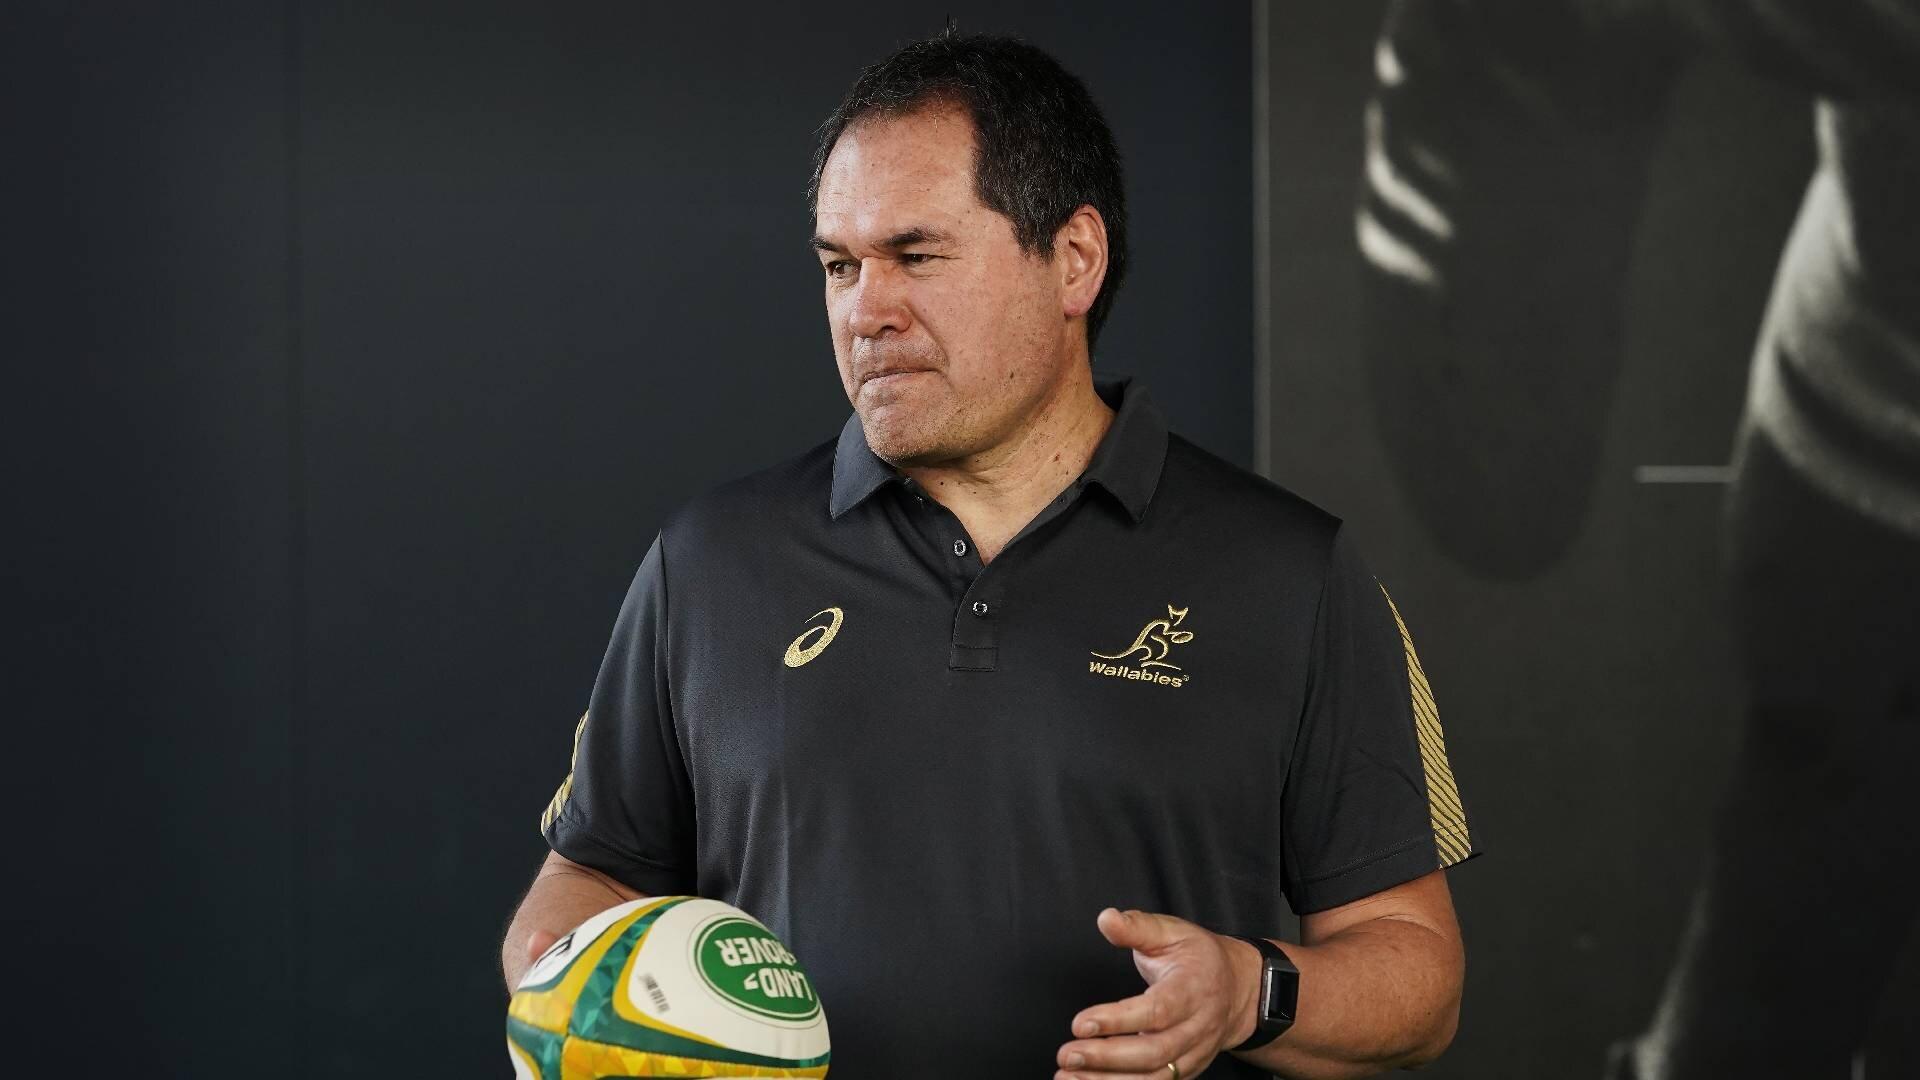 Dave Rennie will have a hard time separating potential candidates for Wallabies roles